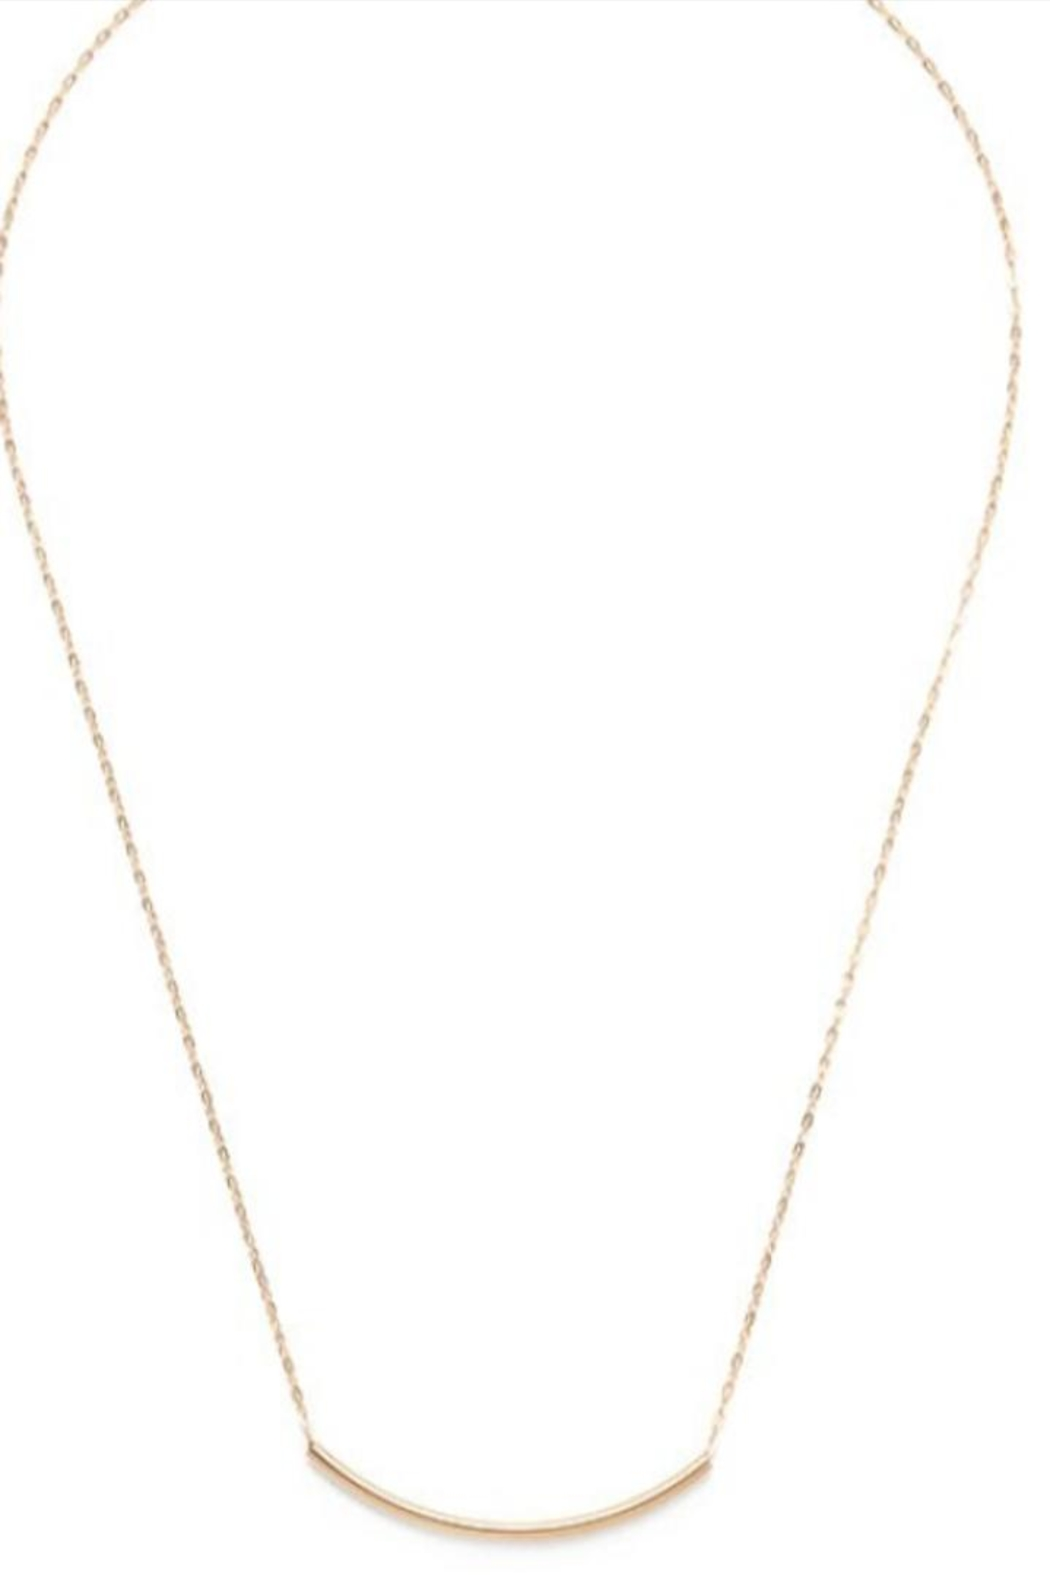 Amano Trading Gold Tube Necklace - Main Image